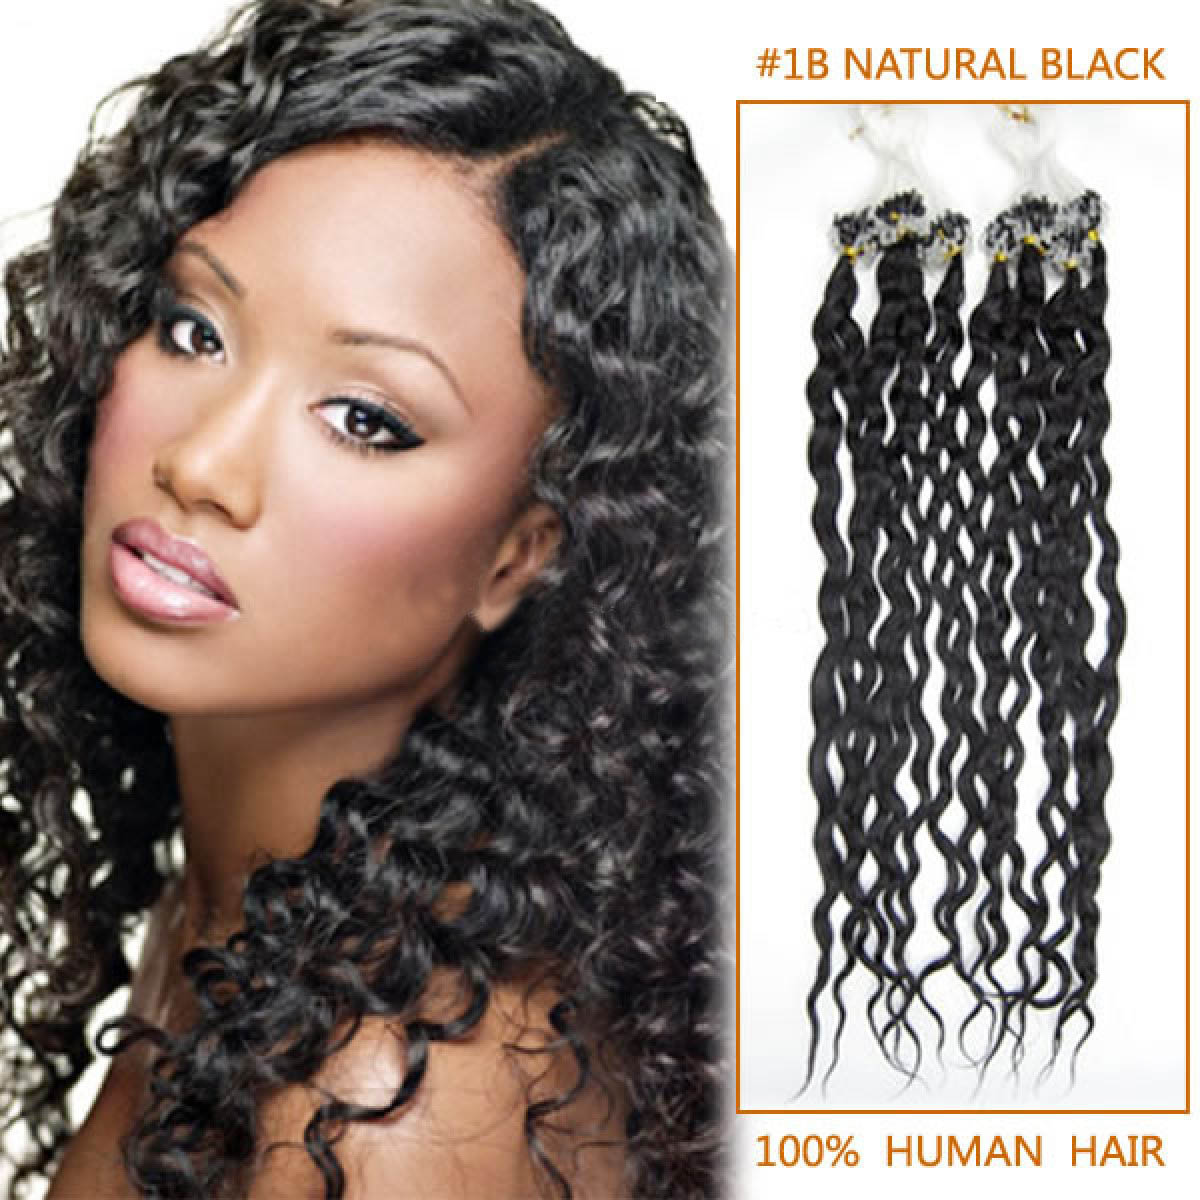 28 Inch Long And Alluring 1b Natural Black Curly Micro Loop Hair